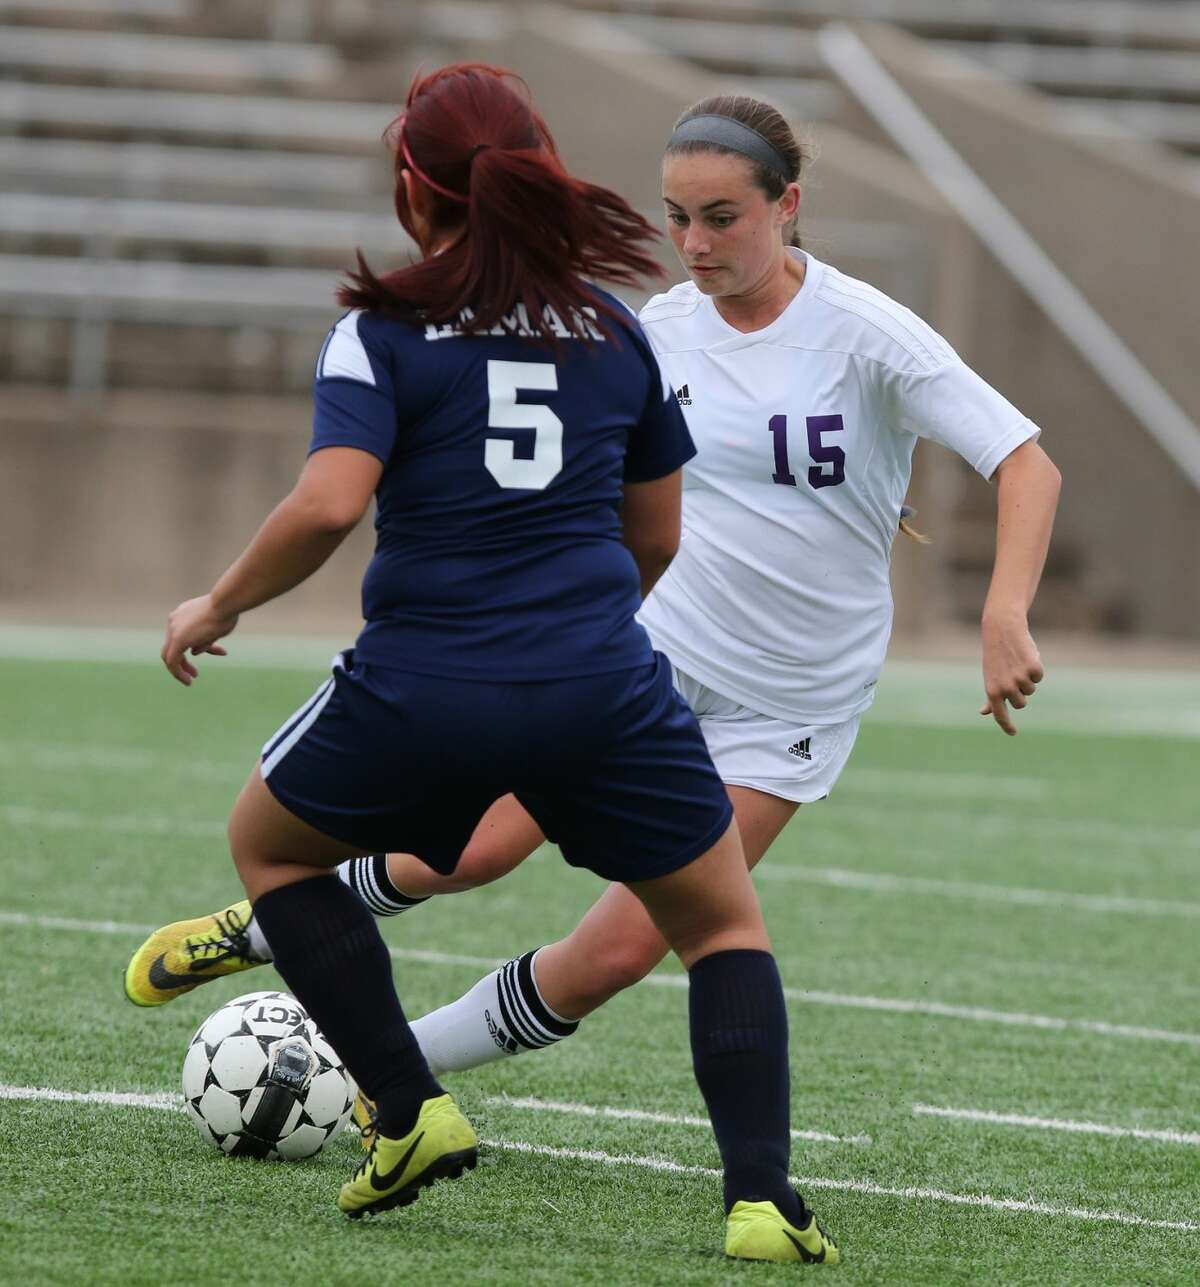 Courtney Pawlik scored three goals as Ridge Point routed Nederland 6-0 to advance to the Region III-5A quarterfinals. The Lady Panthers won their fifth straight area championship.